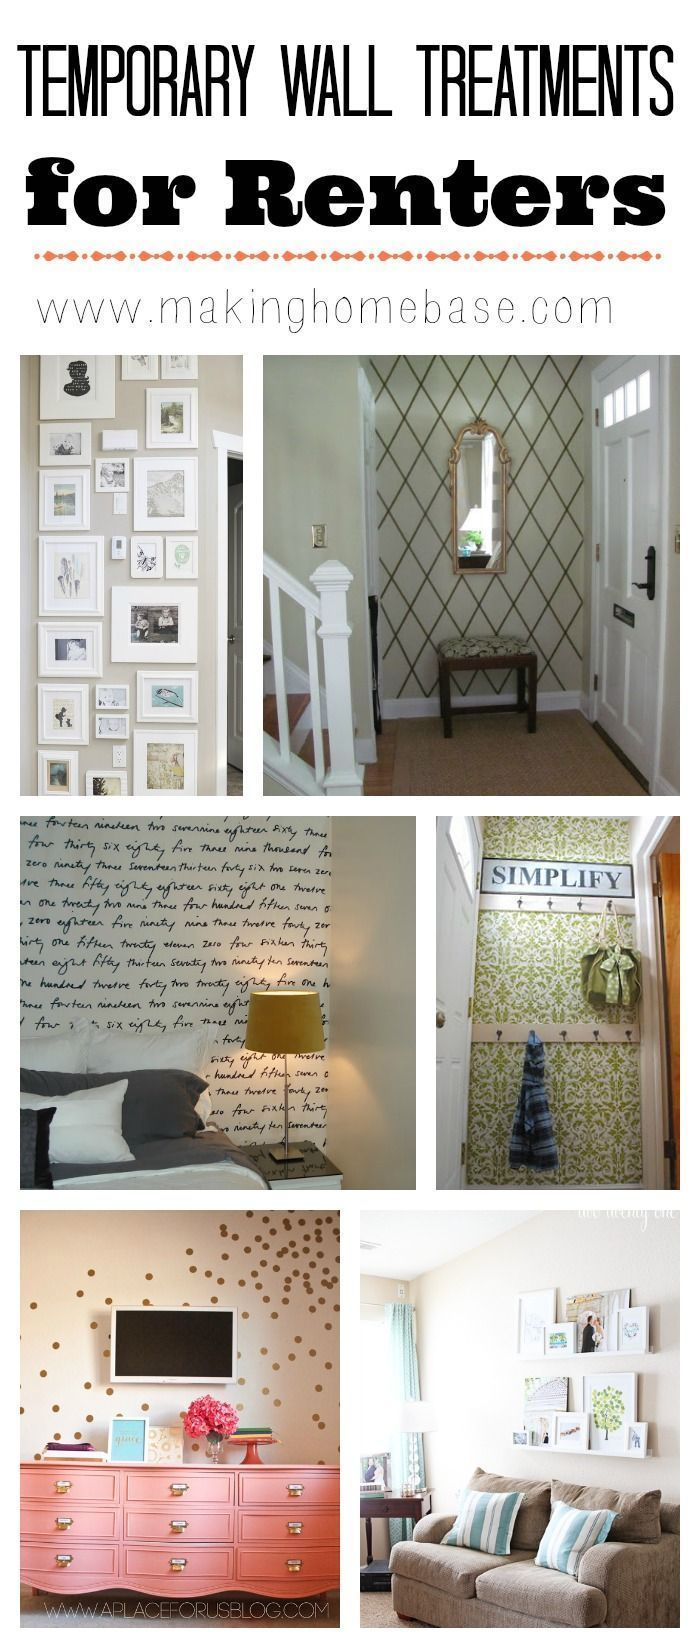 Als Don T Have To Be All Drab White Walls These Wall Treatments Take Blah And Boring Fun Lively Bonus Is That They Area Temporary